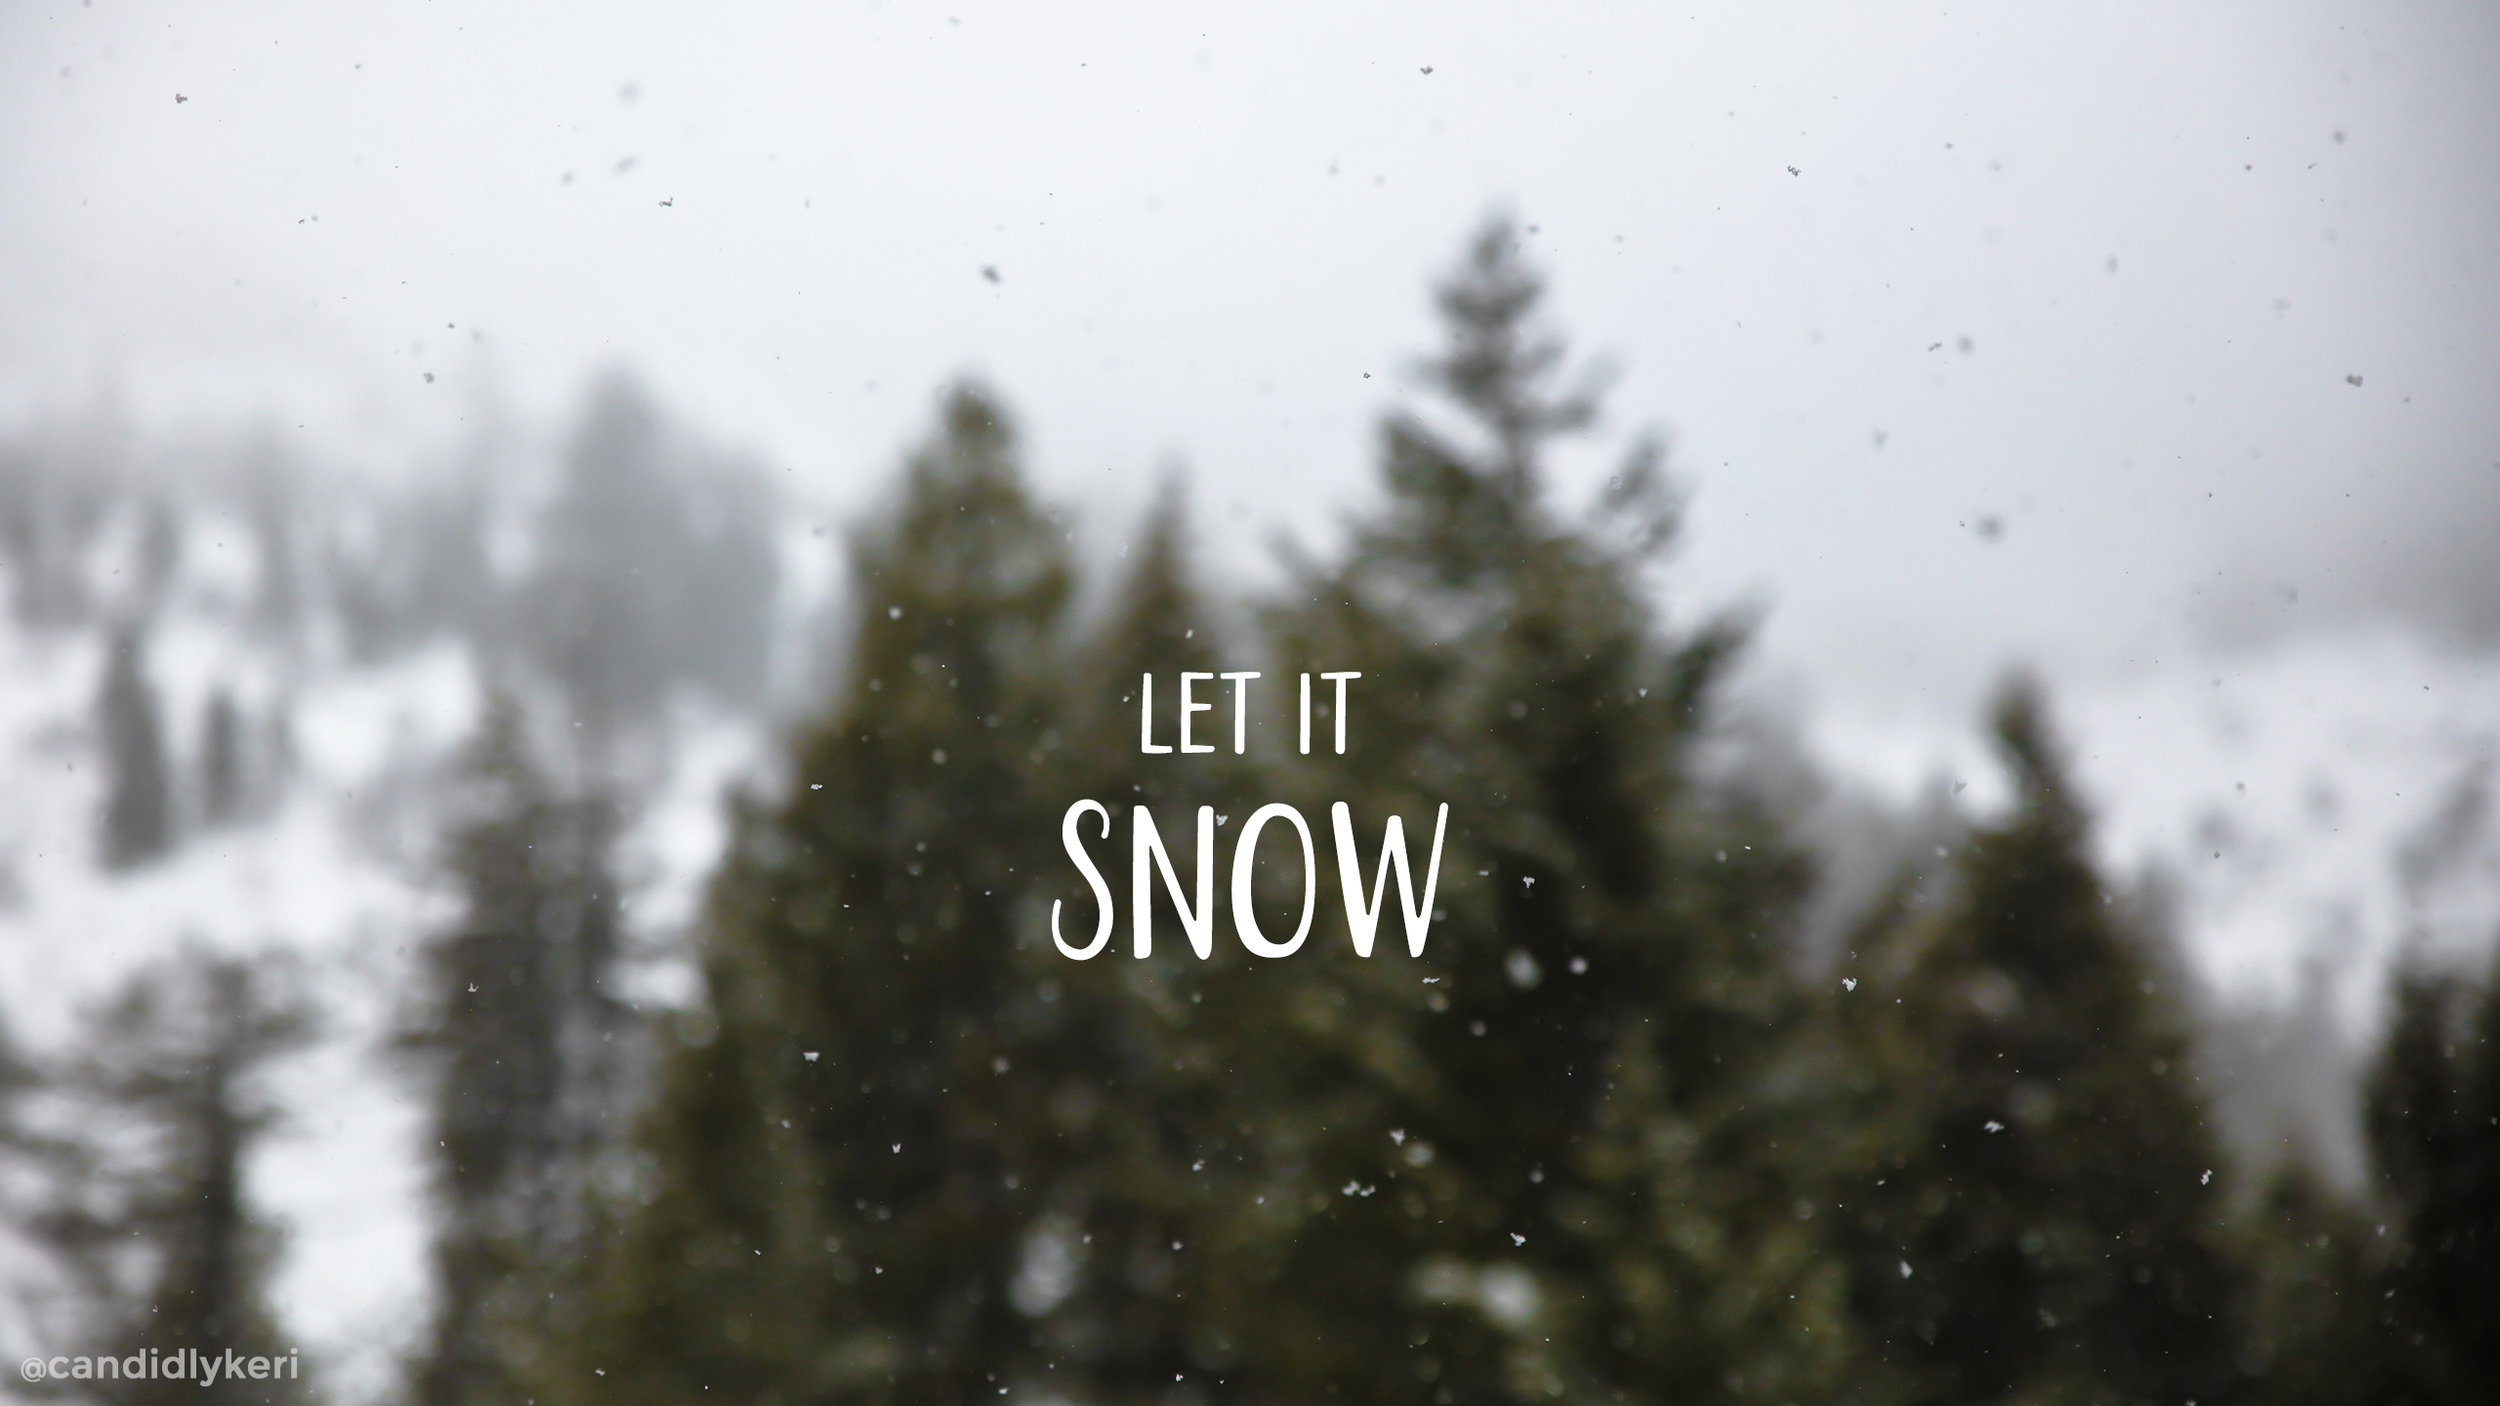 Christmas+Holiday+Wallpaper+Let+it+Snow